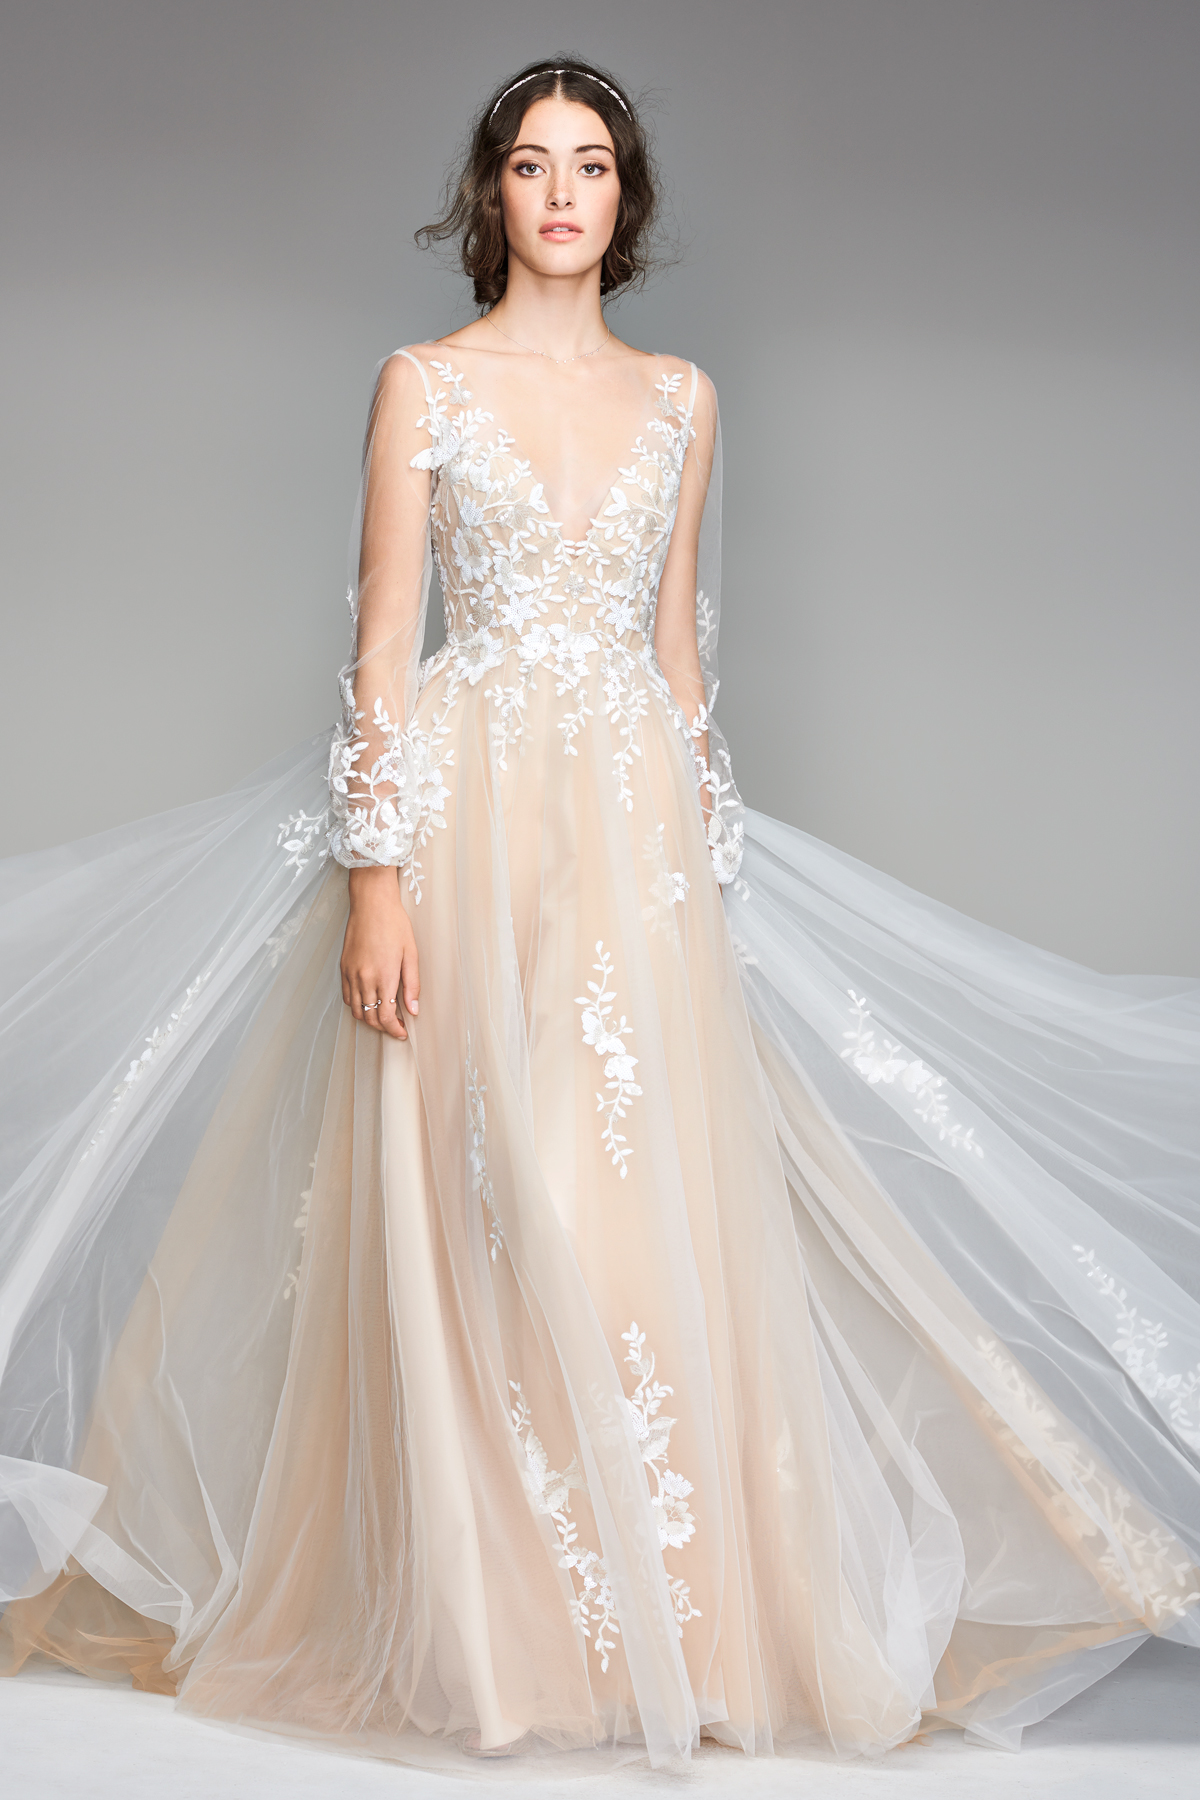 willowby by watters 2018 long-sleeve floral wedding dress